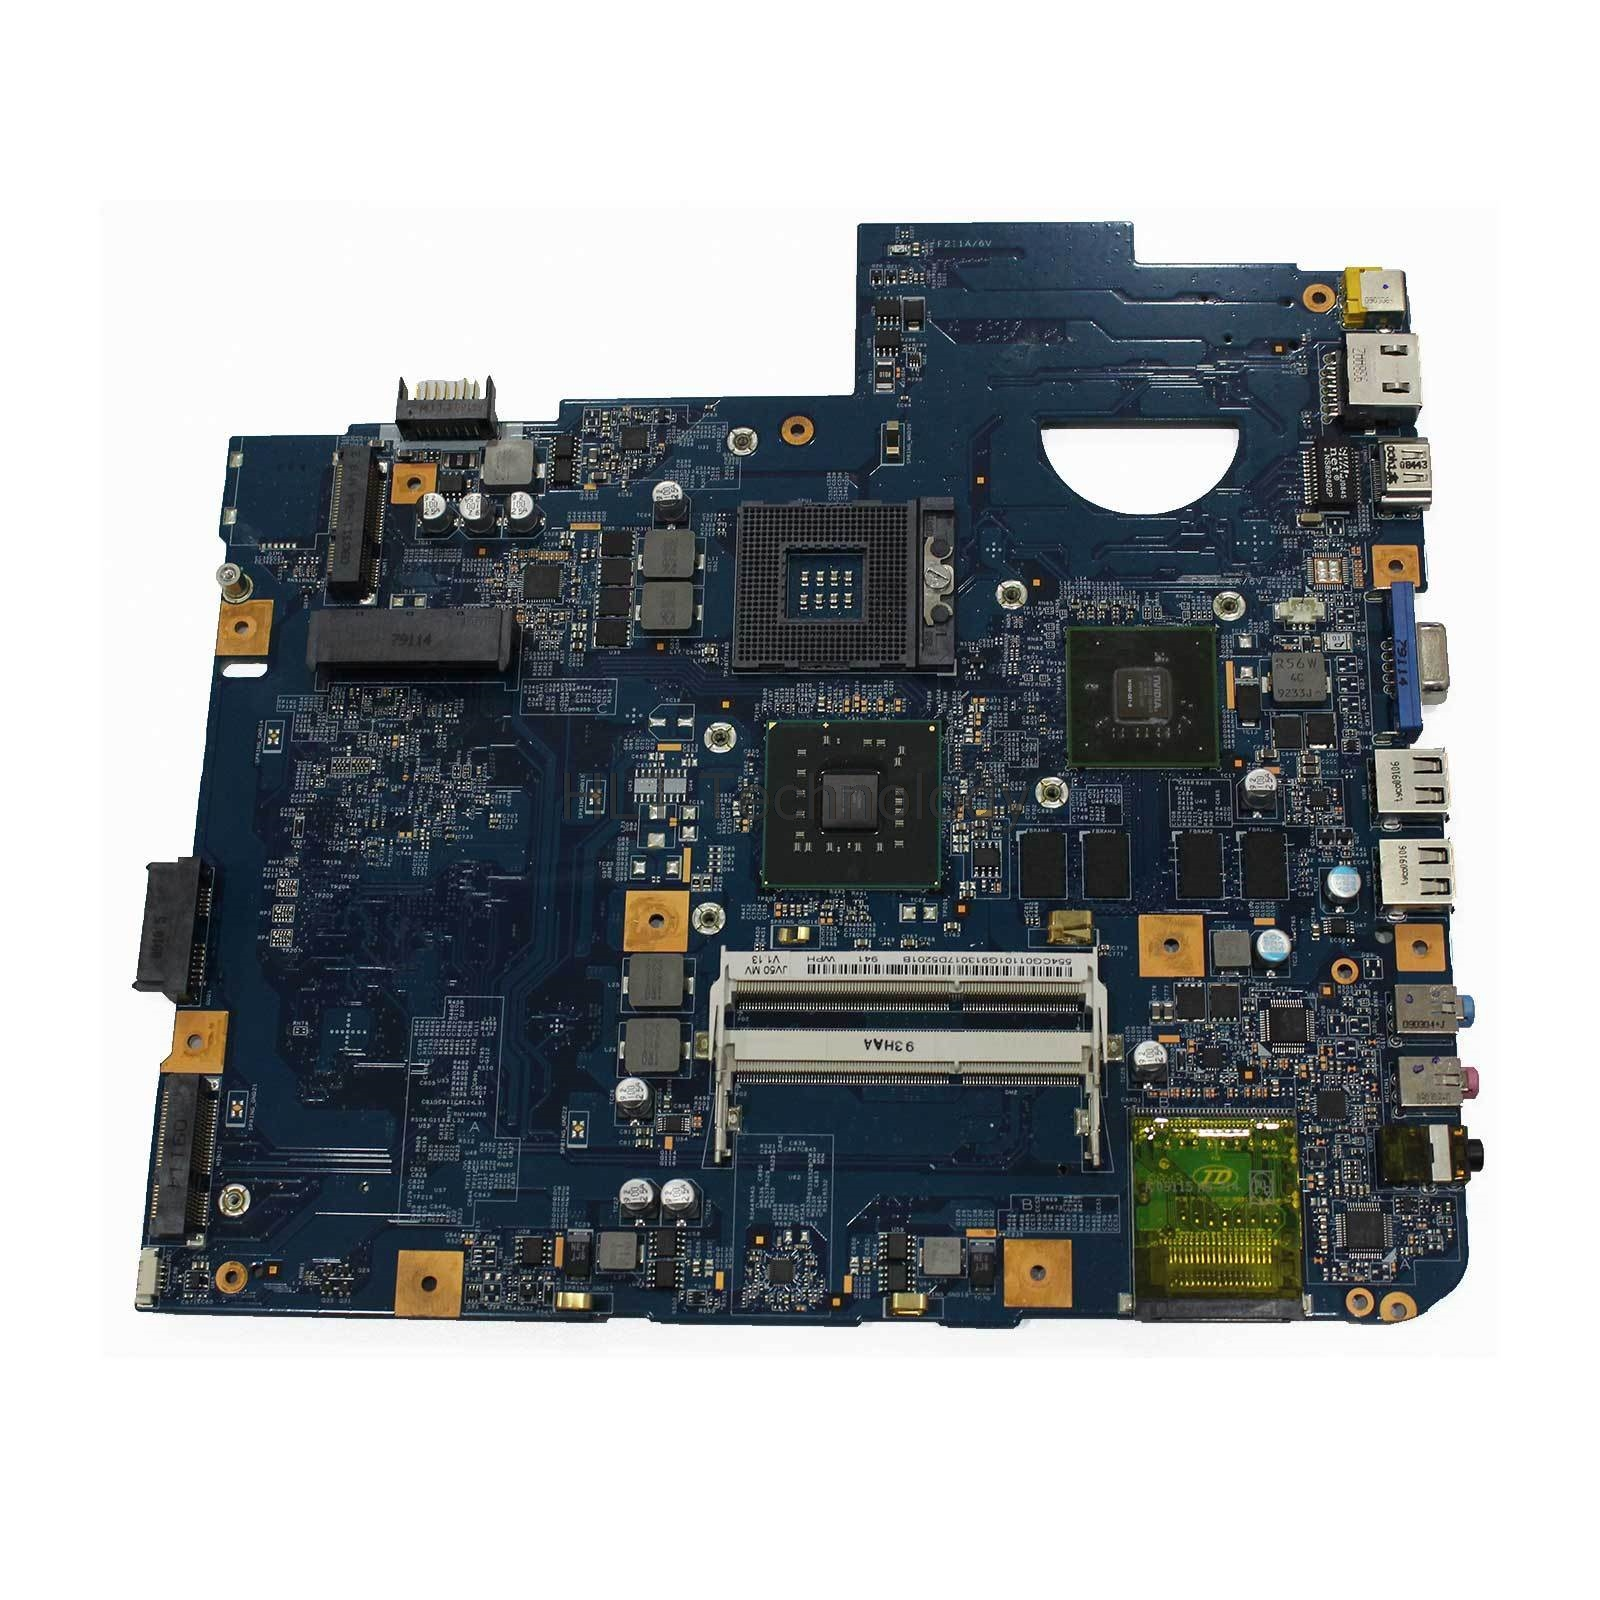 SHELI laptop Motherboard for ACER ASPIRE 5738 5338 JV50-MV 08245-1 48.4CG01.011 MBP5601007 MB.P5601.007 DDR3 PM45 100% Tested ok 50 4cg15 001 lcd cable with touch screen port fit for acer 5738 5338 5538 5542 5536 series laptop motherboard